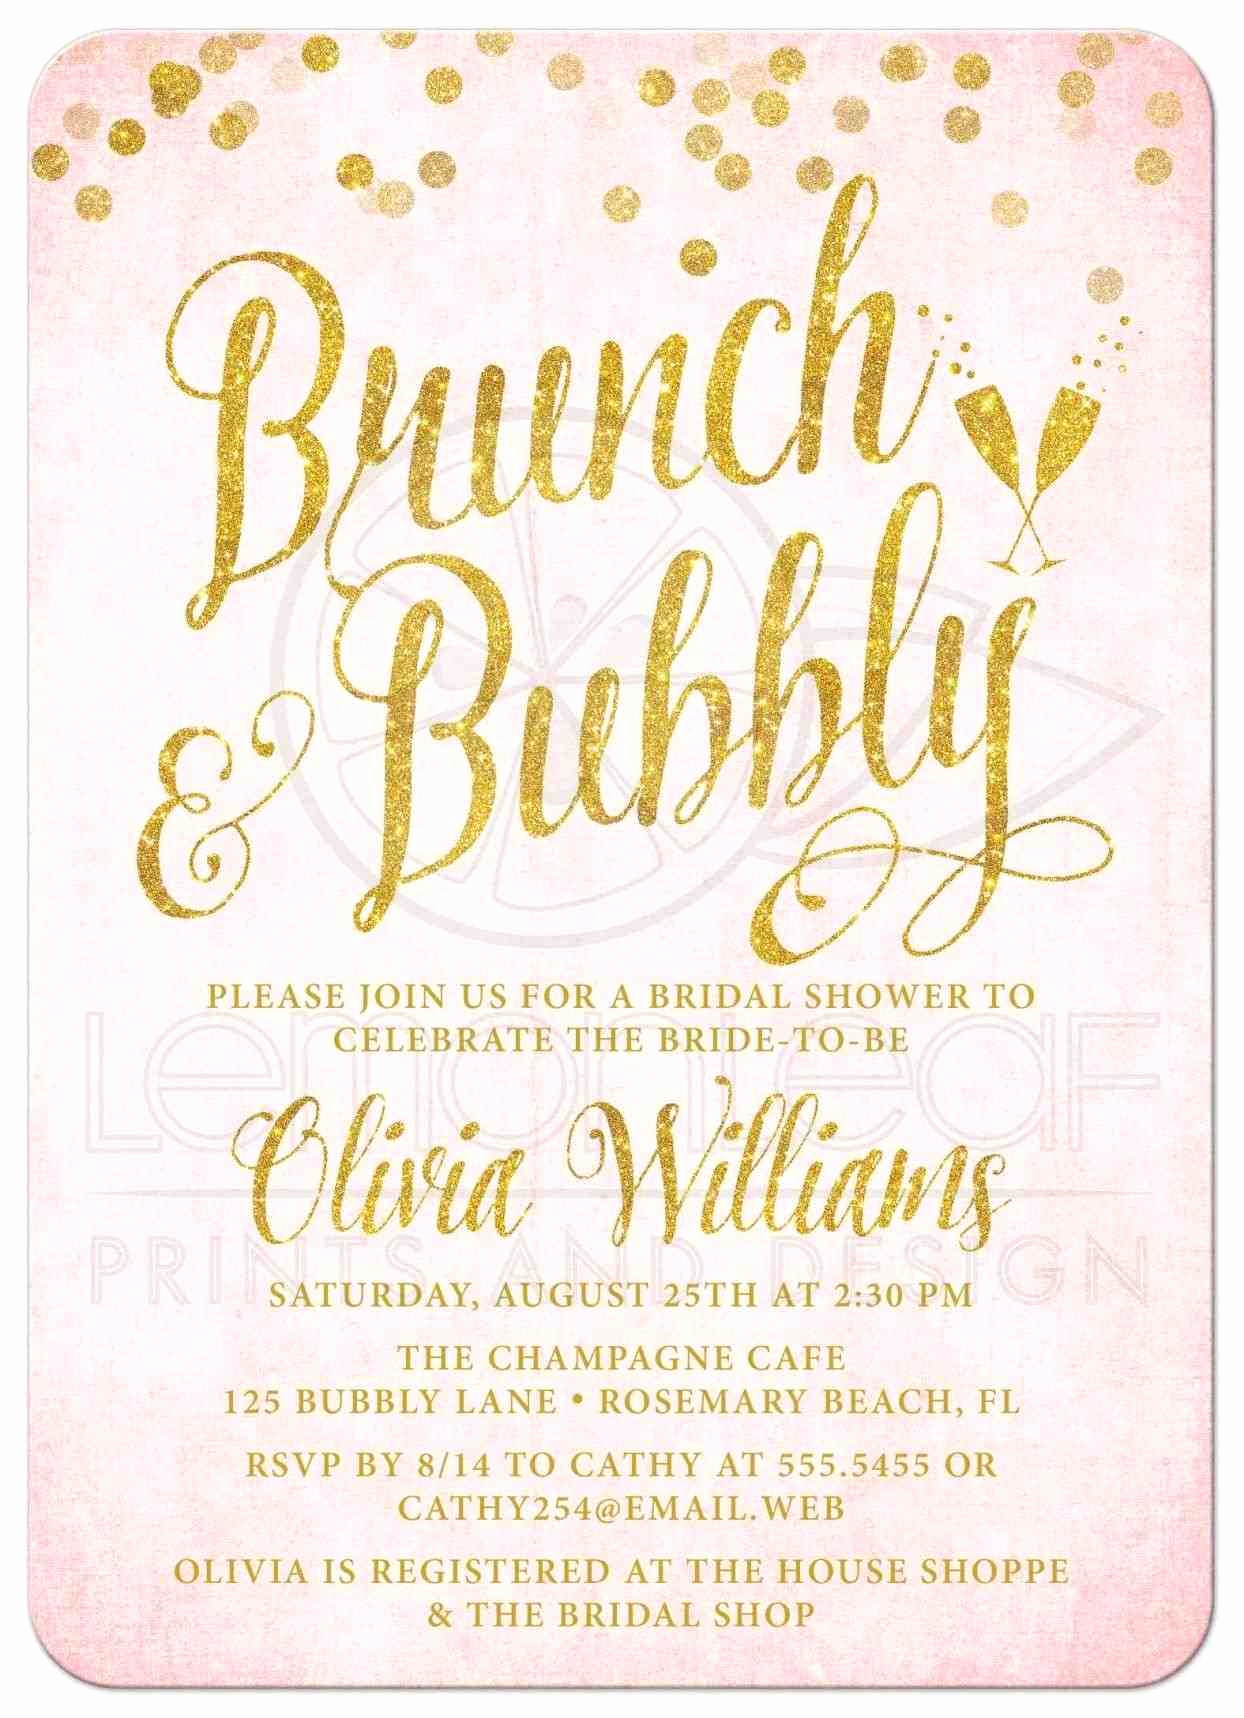 Bridal Shower Invitation Wording Elegant 70th Birthday Invitation Wording to Inspire You How to